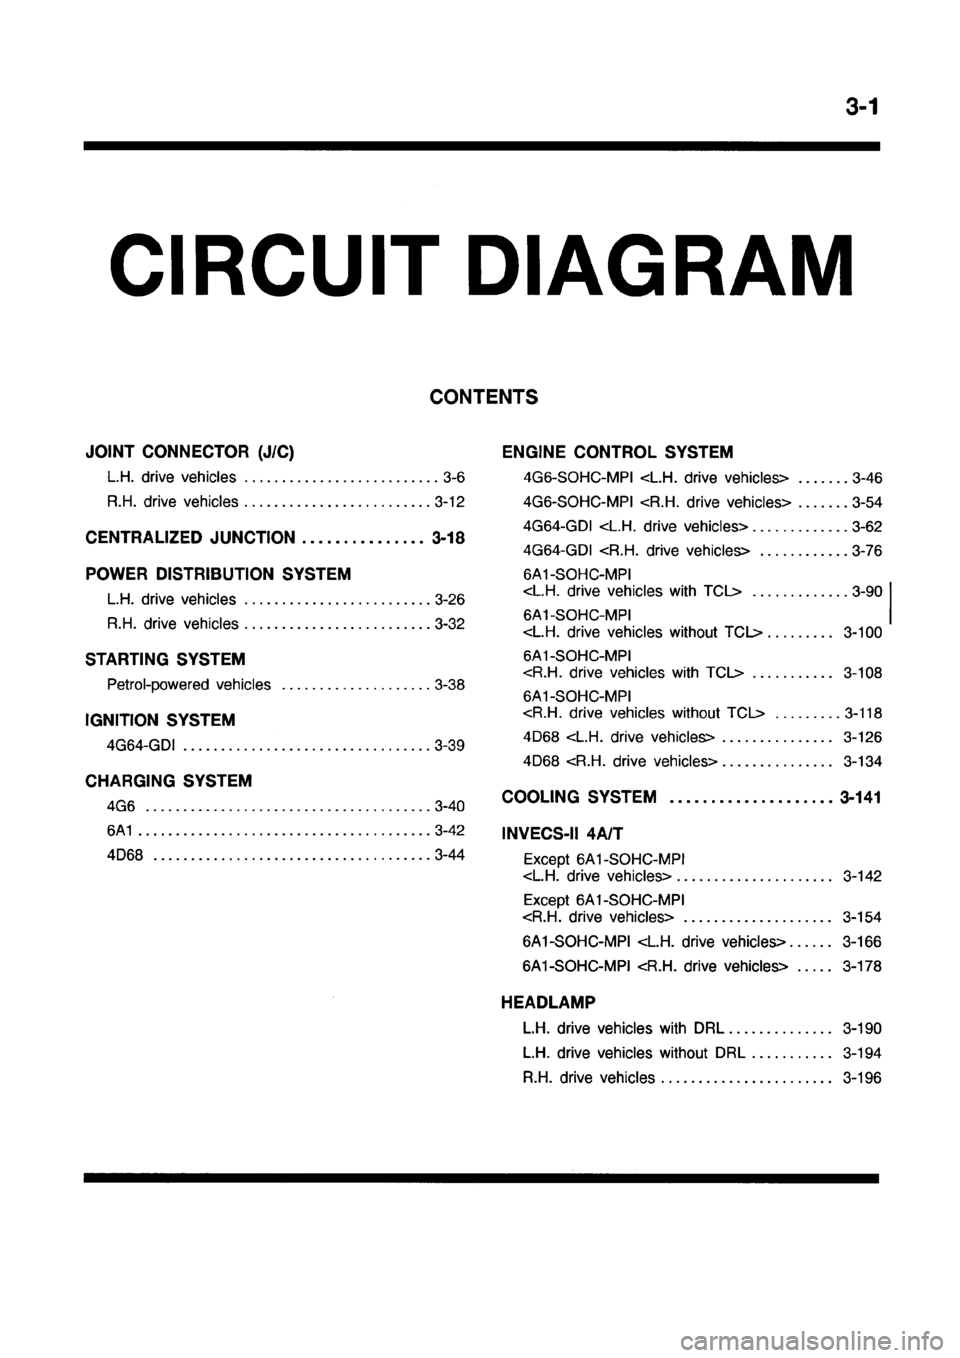 Mitsubishi Gdi Wiring Diagram Library 4g64 Galant 1999 8g Electrical Workshop Manual